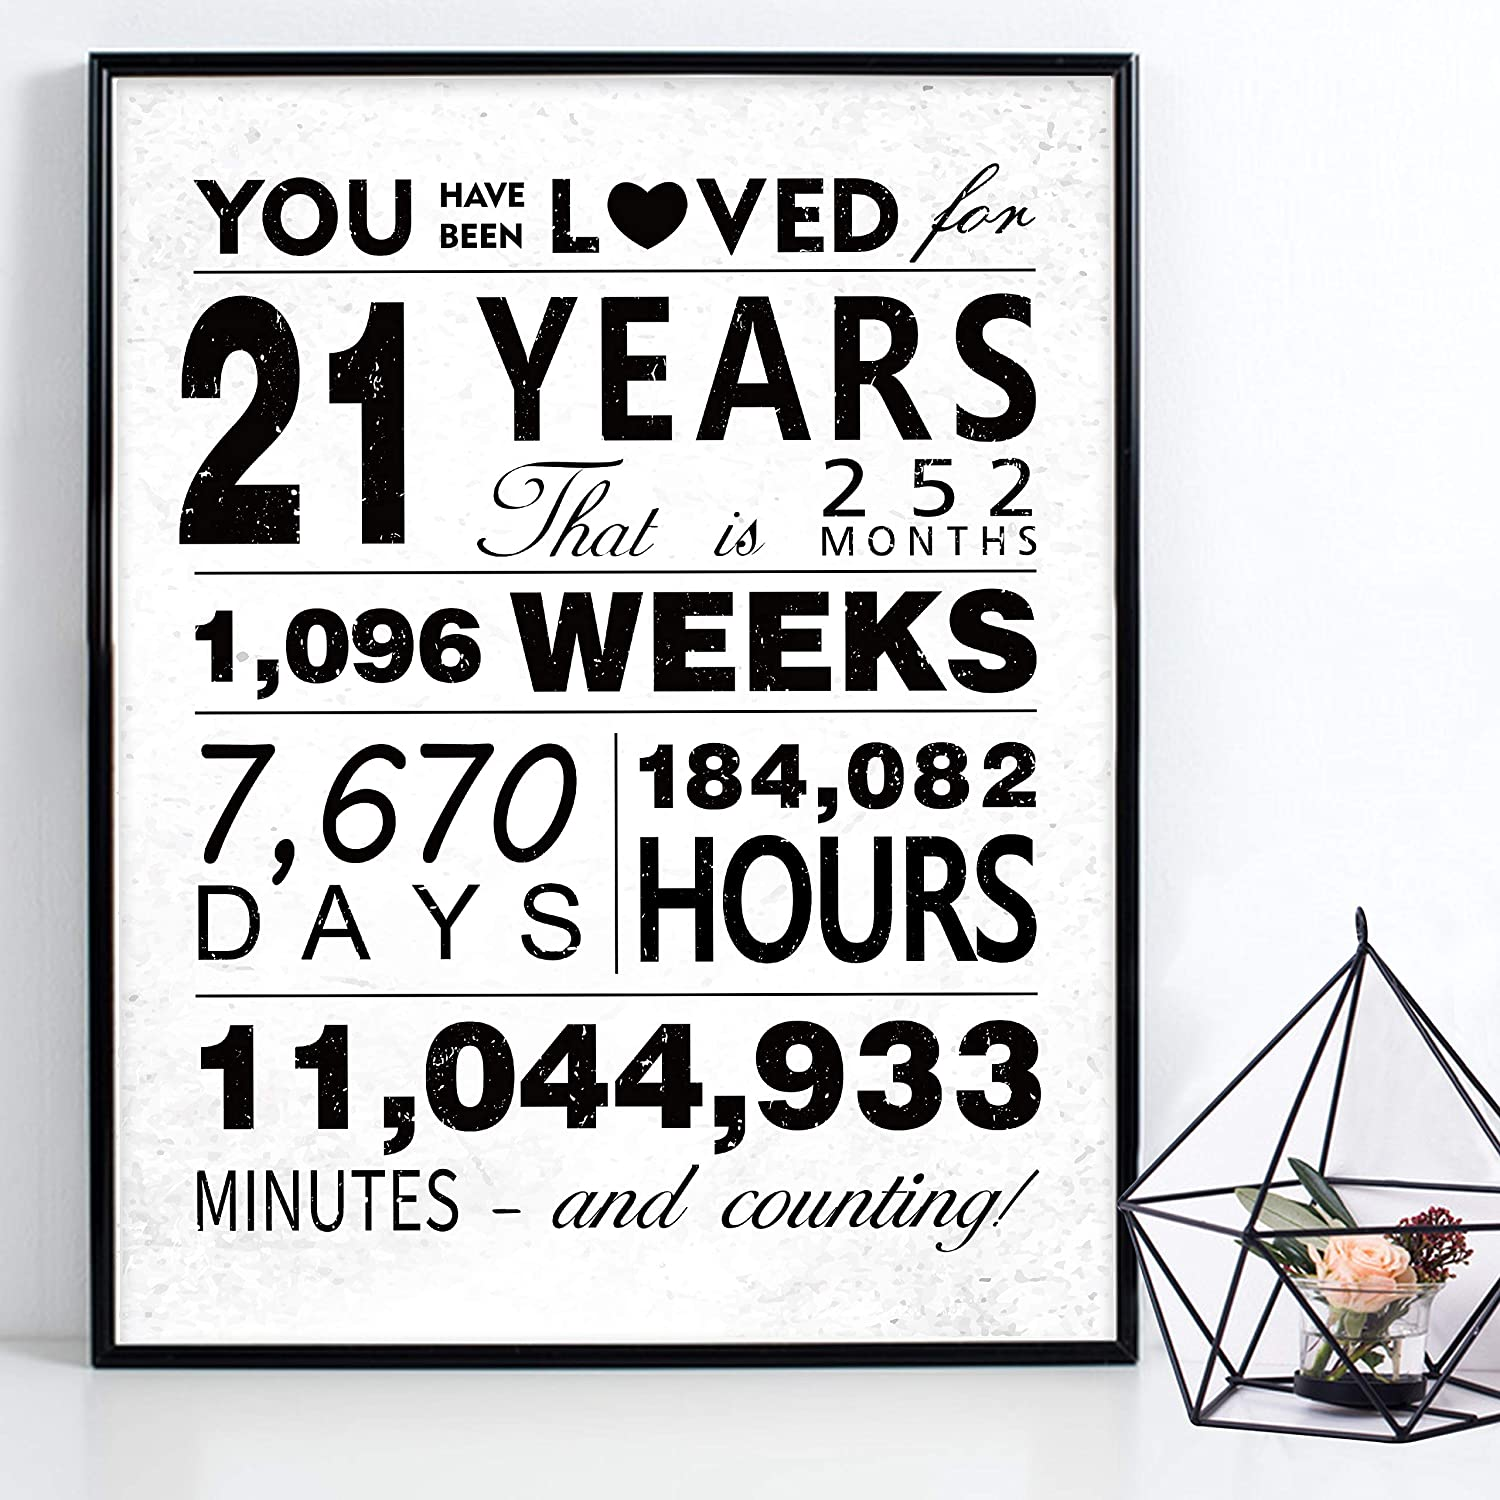 "WATINC You Have Been Loved for 21 Years Poster, 11"" x 14"" Unframed Art Prints for 21th Birthday Decorations Party Supplies, 21th Anniversary Birthday Gifts for 21 Years Old Boys Girls Men Women"